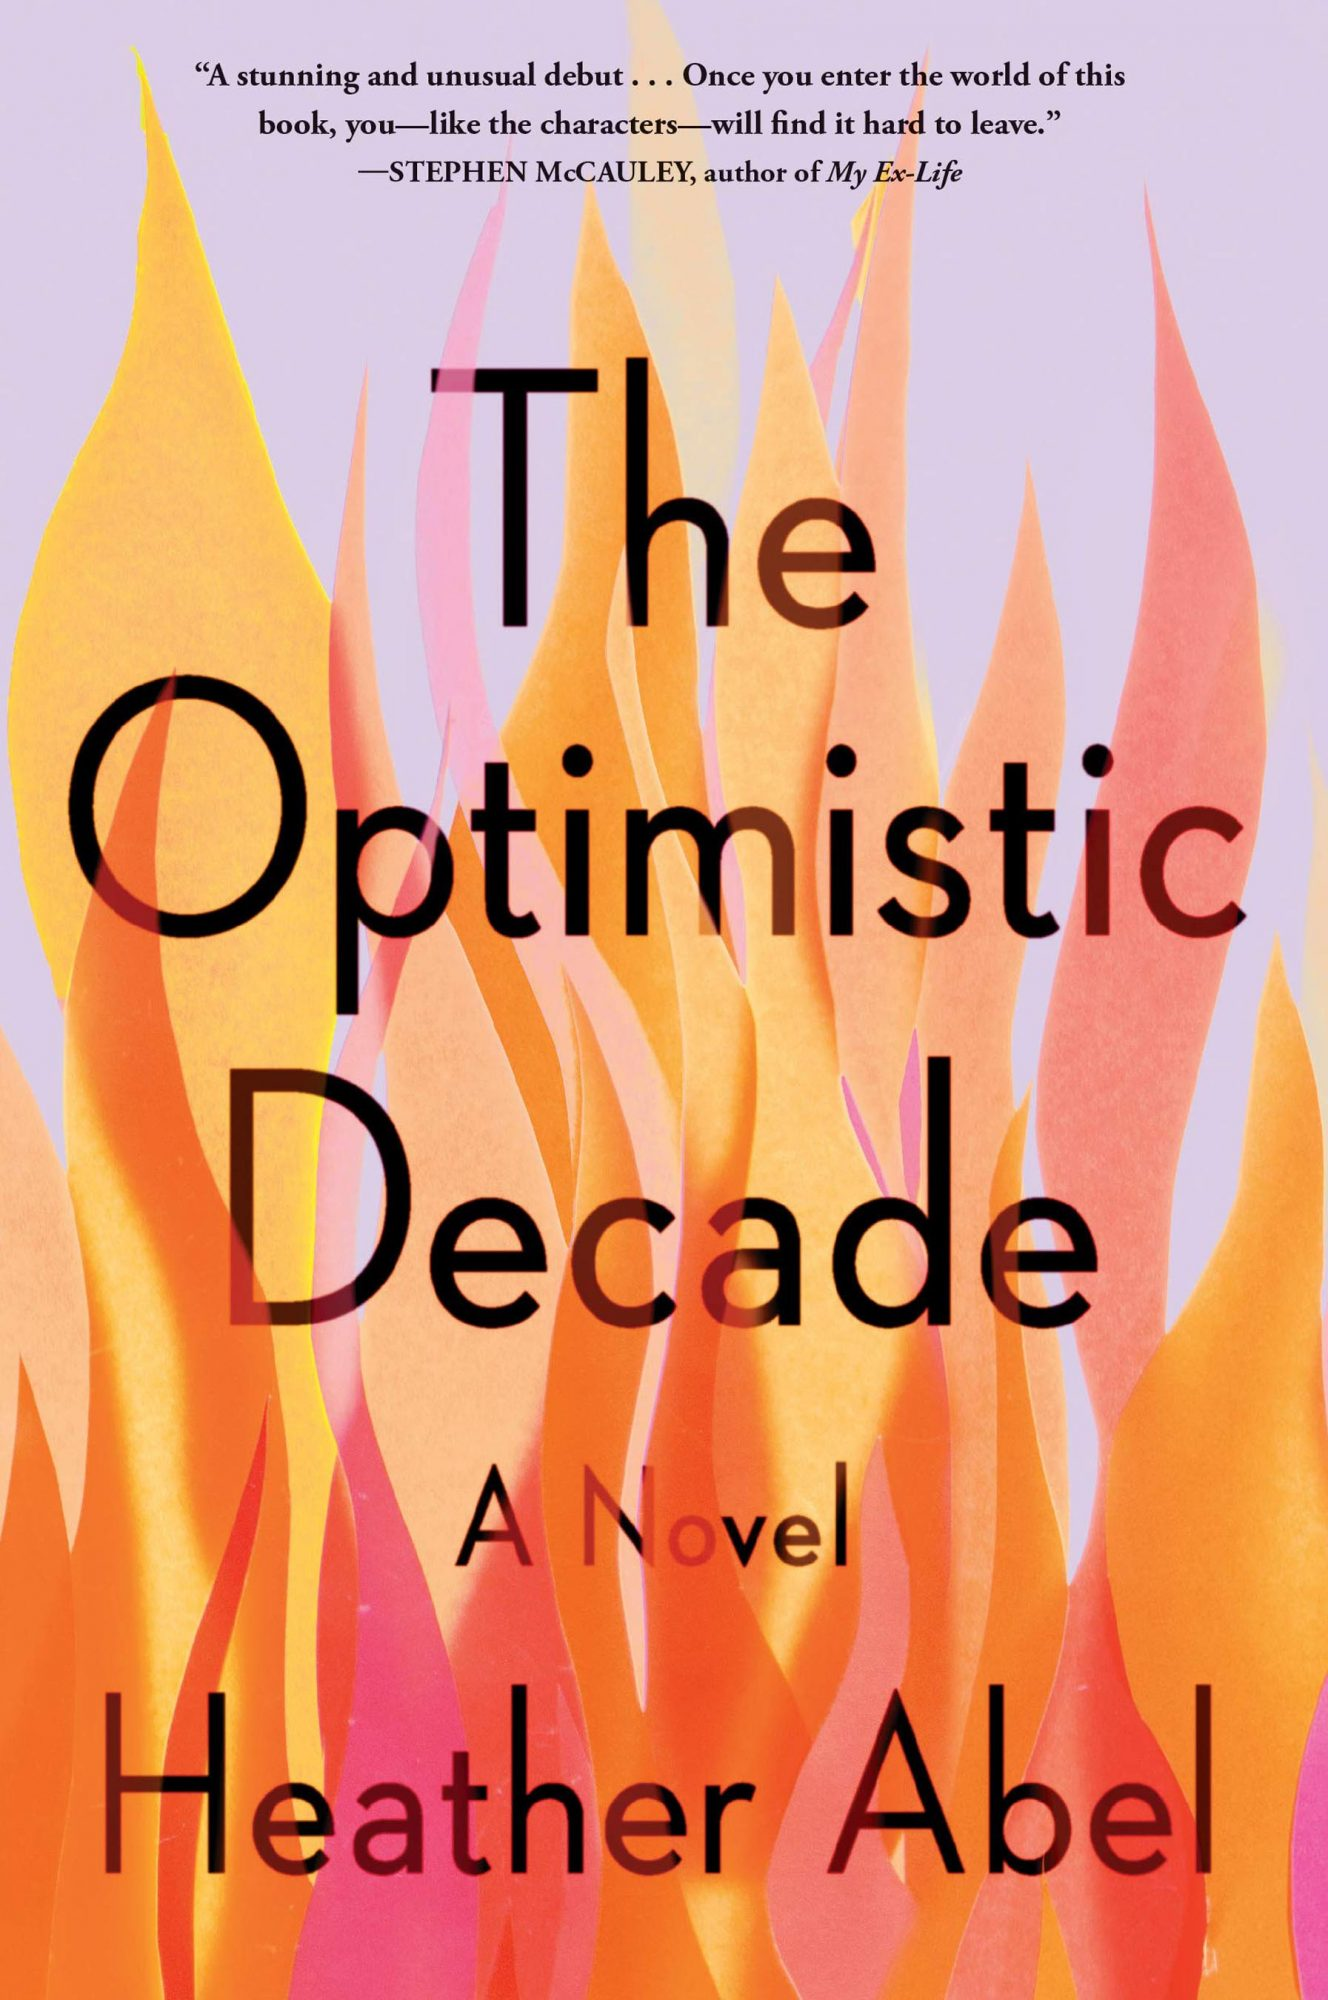 The Optimistic Decade by Heather AbelPublisher: Algonquin Books